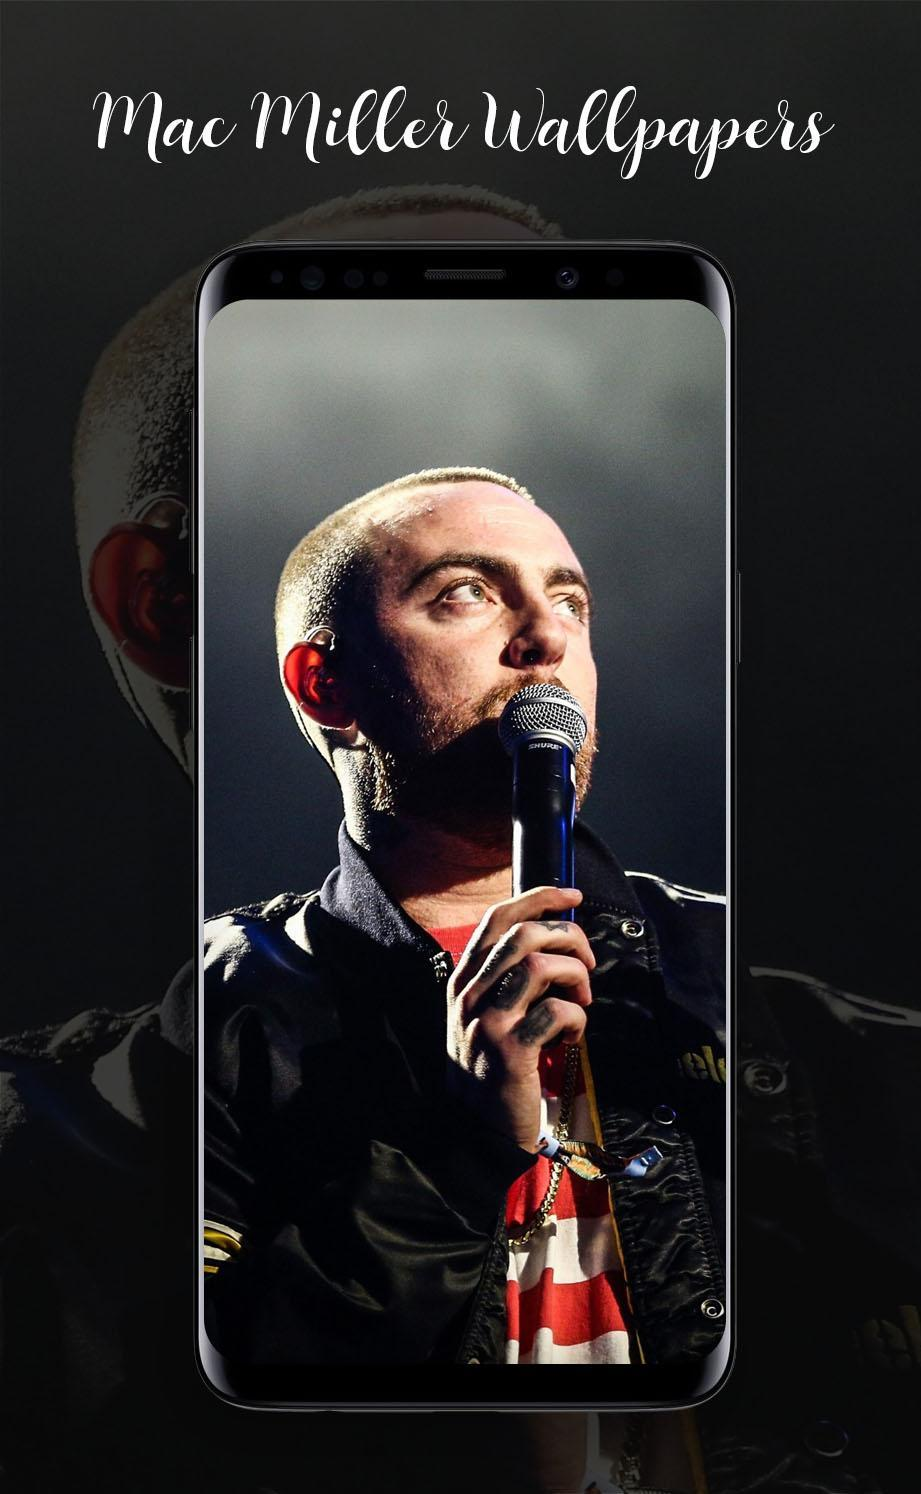 Mac Miller Wallpapers Hd 4k For Android Apk Download